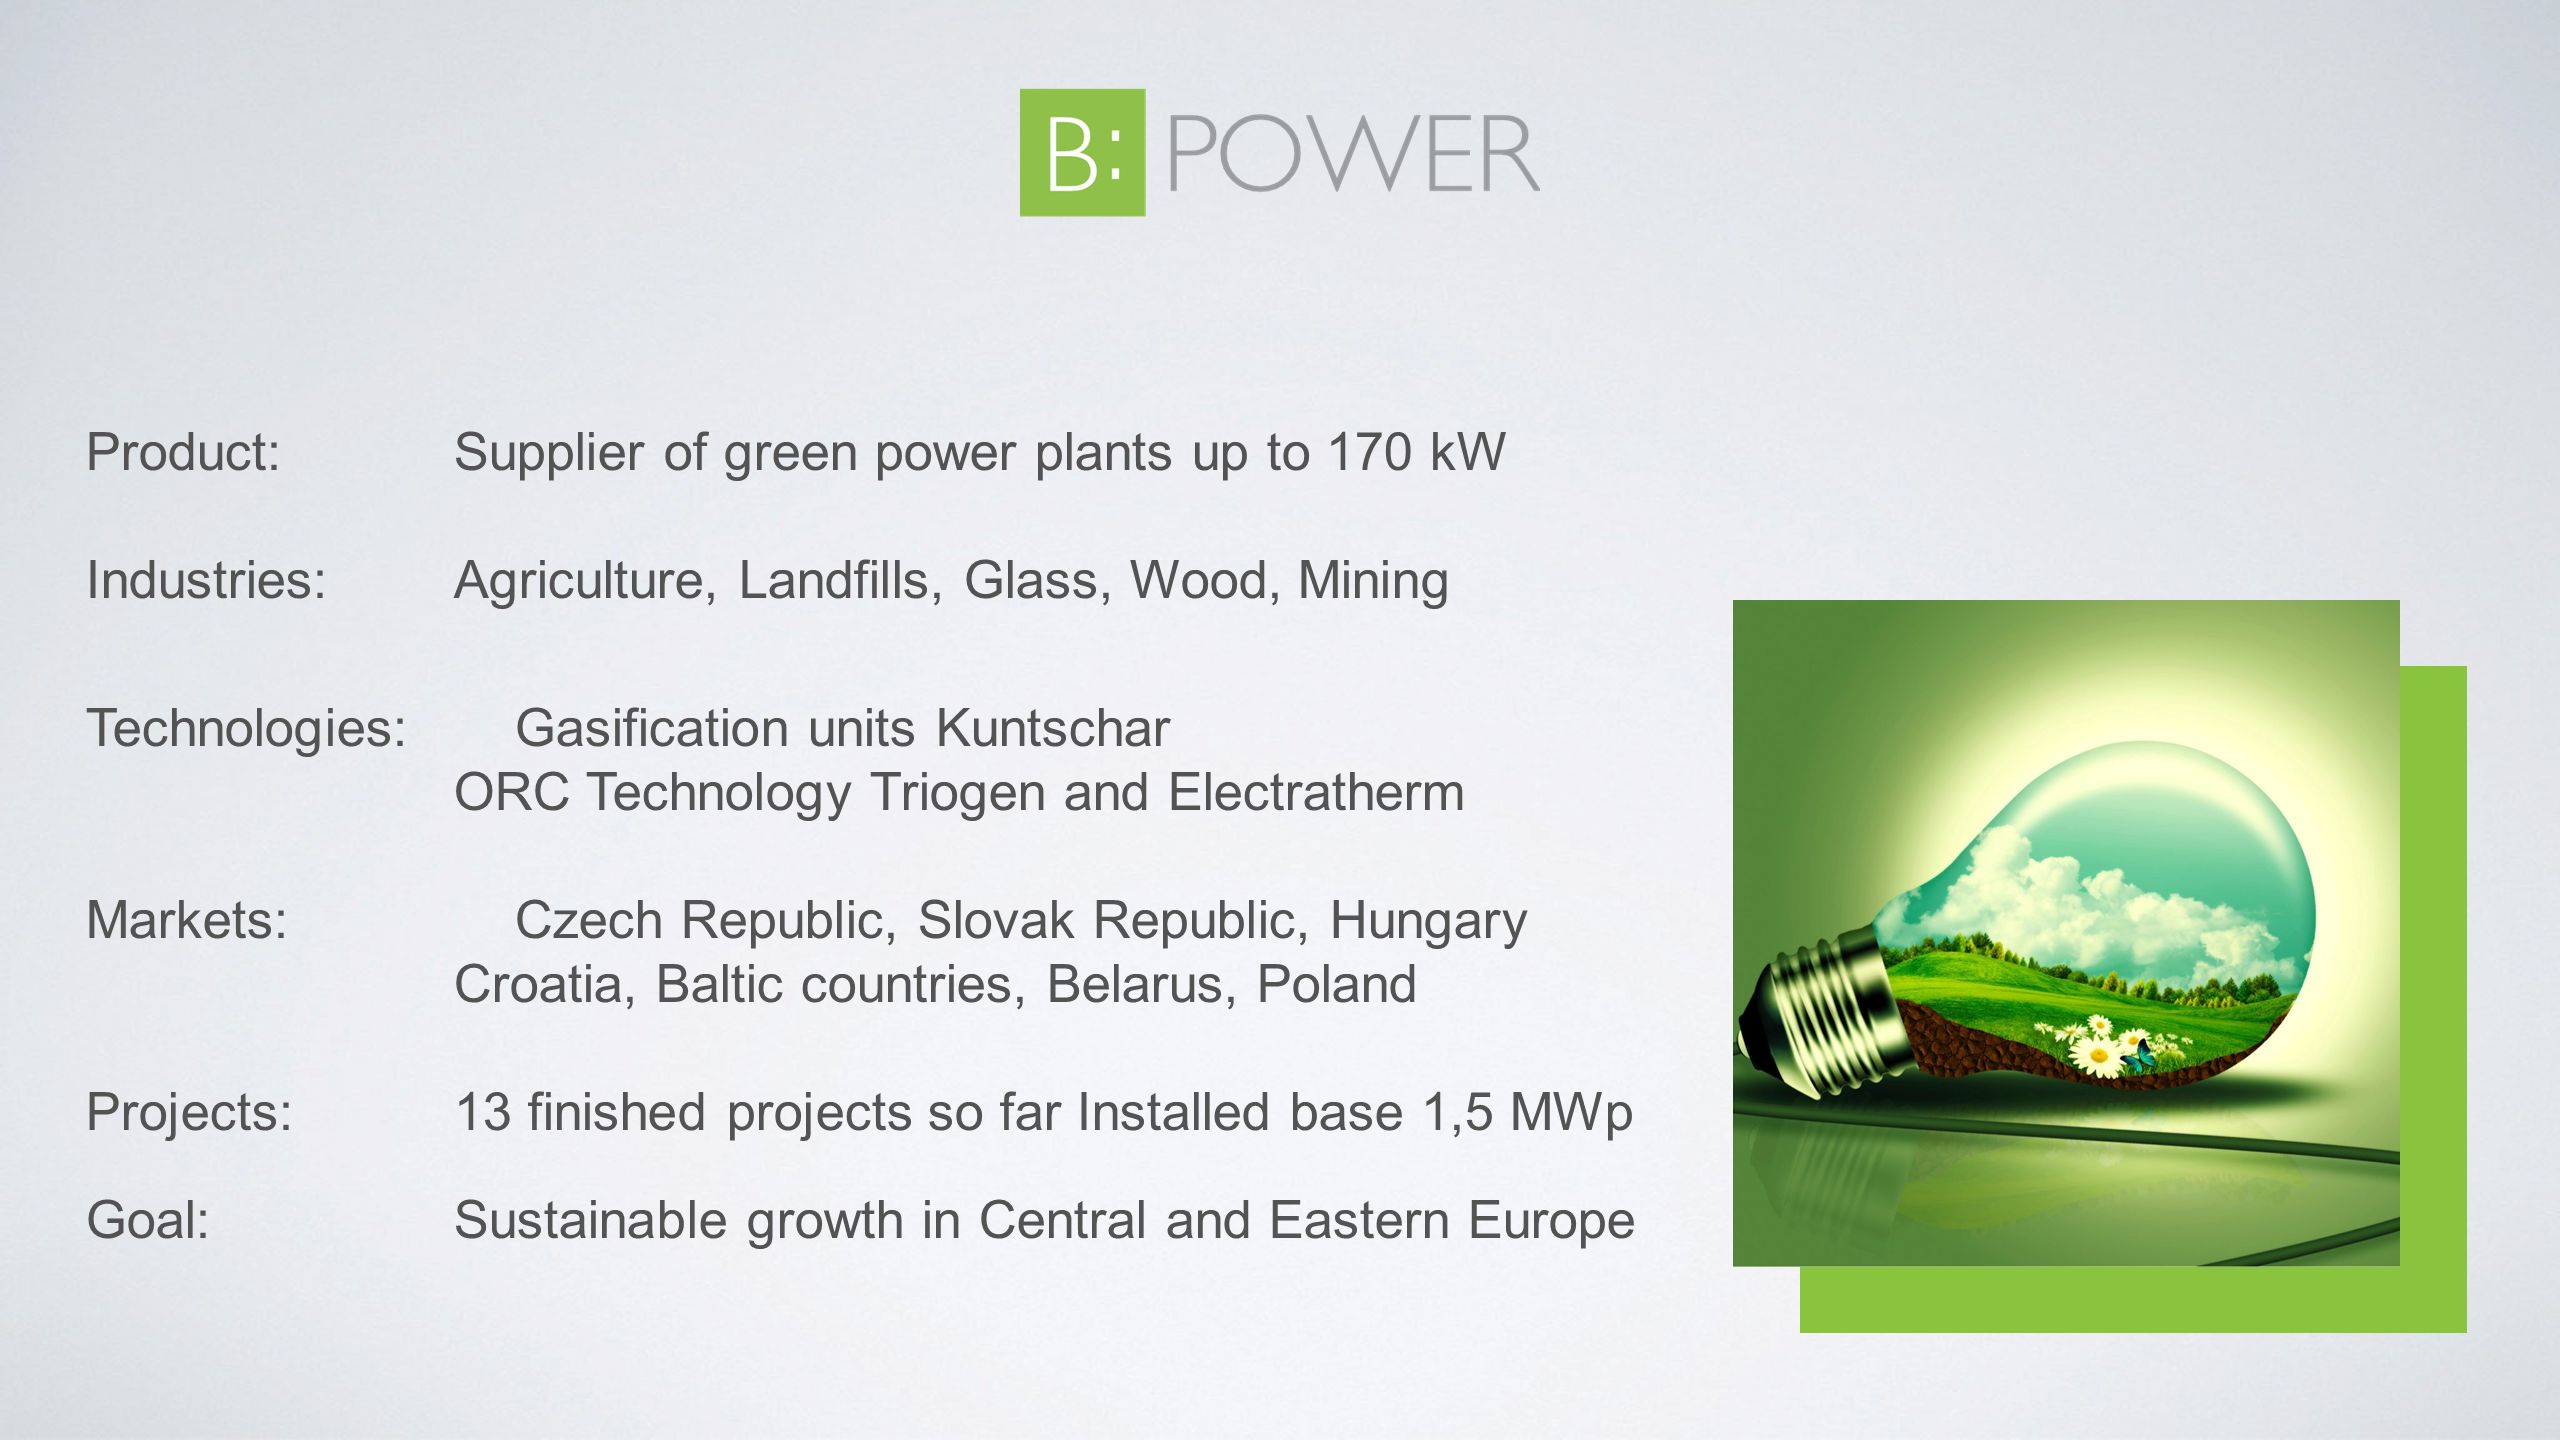 Product: Supplier of green power plants up to 170 kW Industries: Agriculture, Landfills, Glass, Wood, Mining Technologies:Gasification units Kuntschar ORC Technology Triogen and Electratherm Markets: Czech Republic, Slovak Republic, Hungary Croatia, Baltic countries, Belarus, Poland Projects: 13 finished projects so far Installed base 1,5 MWp Goal: Sustainable growth in Central and Eastern Europe